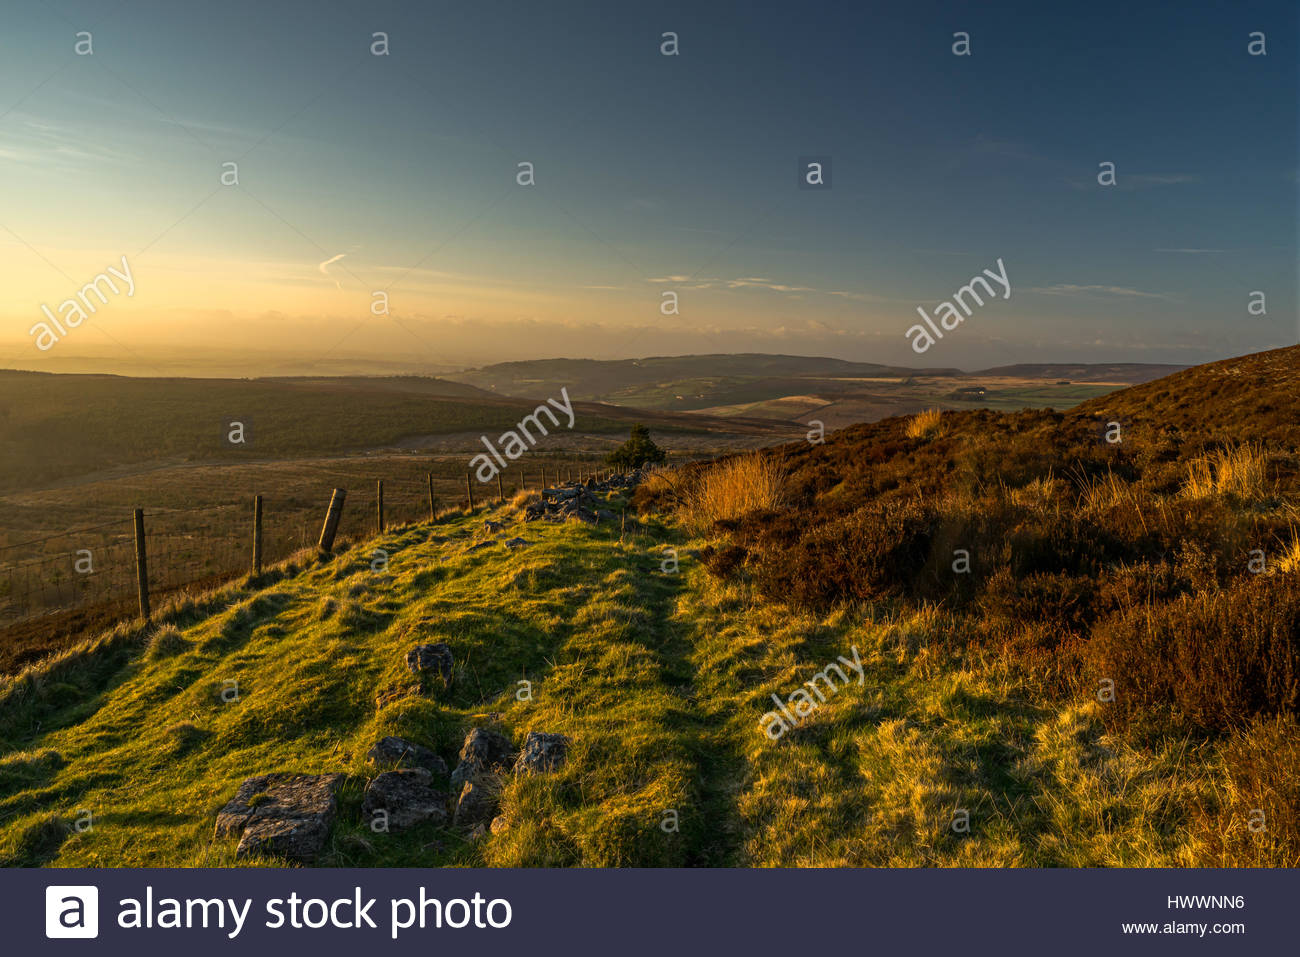 york weather. Black Hambleton Hill, North York Moors, UK. 23rd March, 2017. Weather: A Dry And Sunny End To The Day Just Before Sunset On Moors. Weather